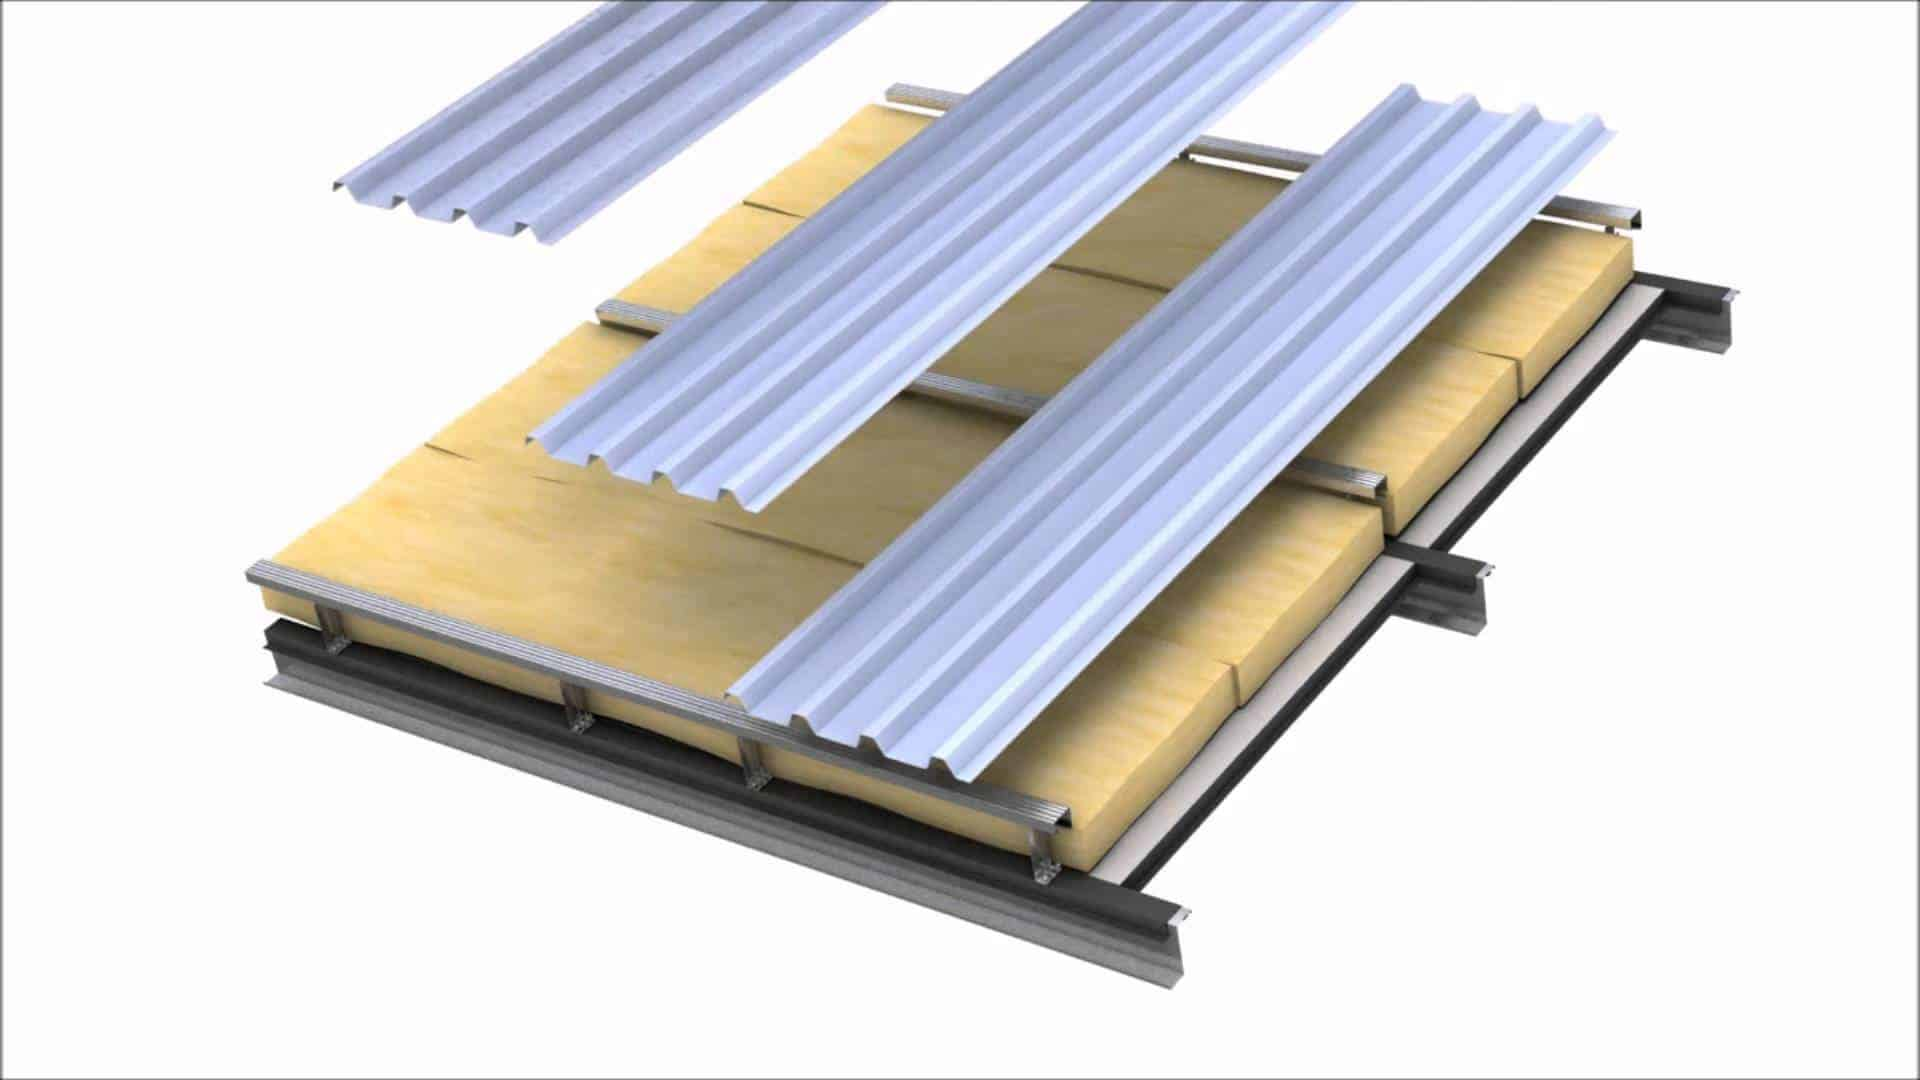 ashgrid roofing system